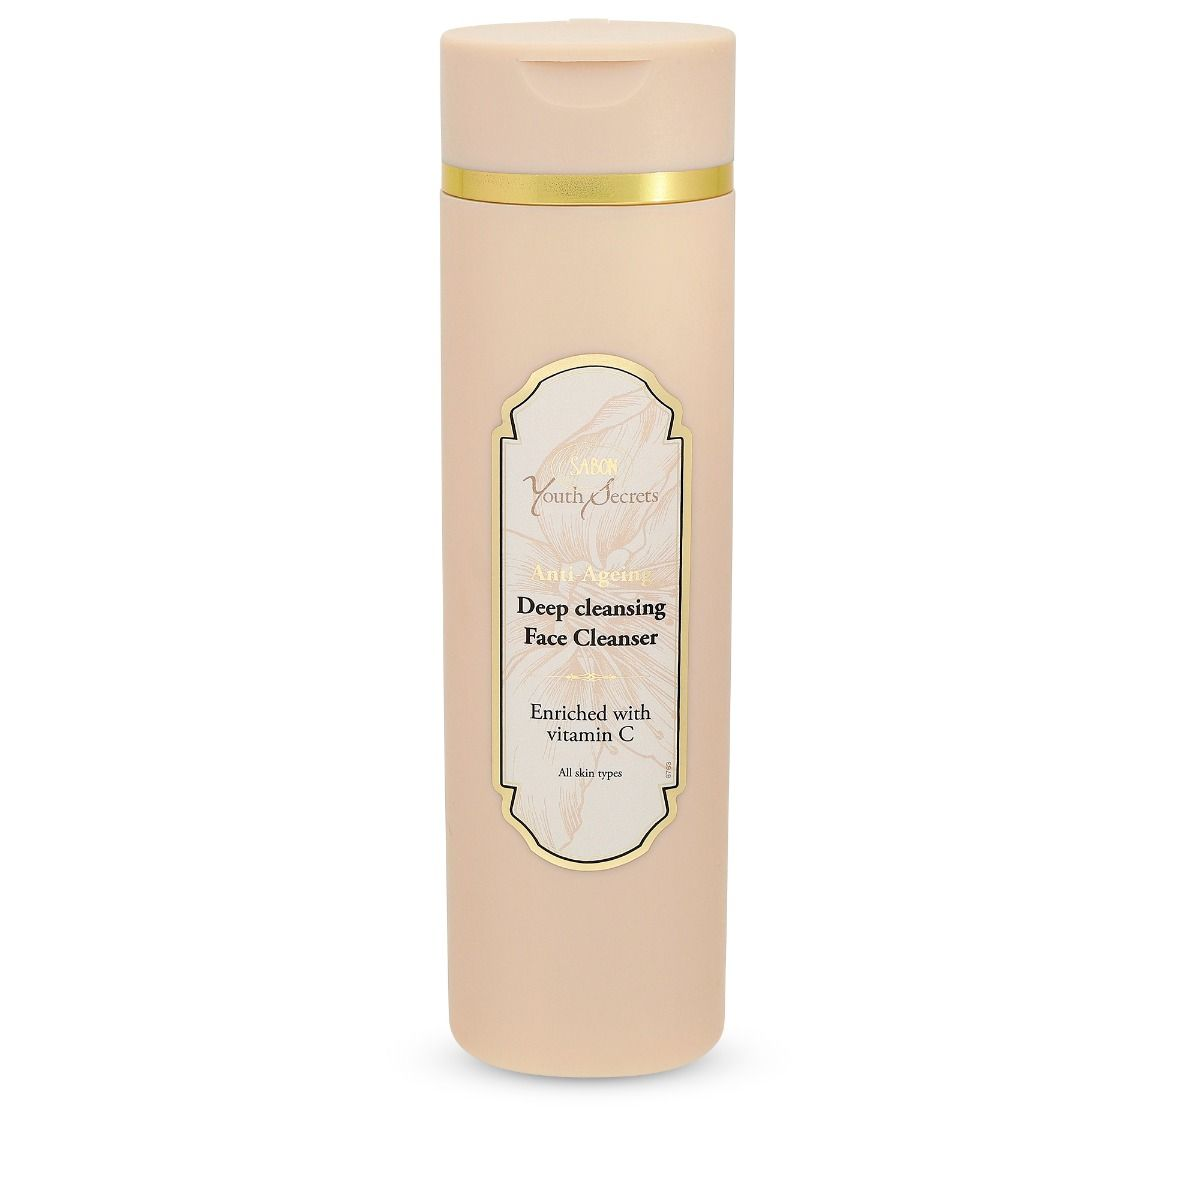 ANTI-AGING FACE CLEANSER